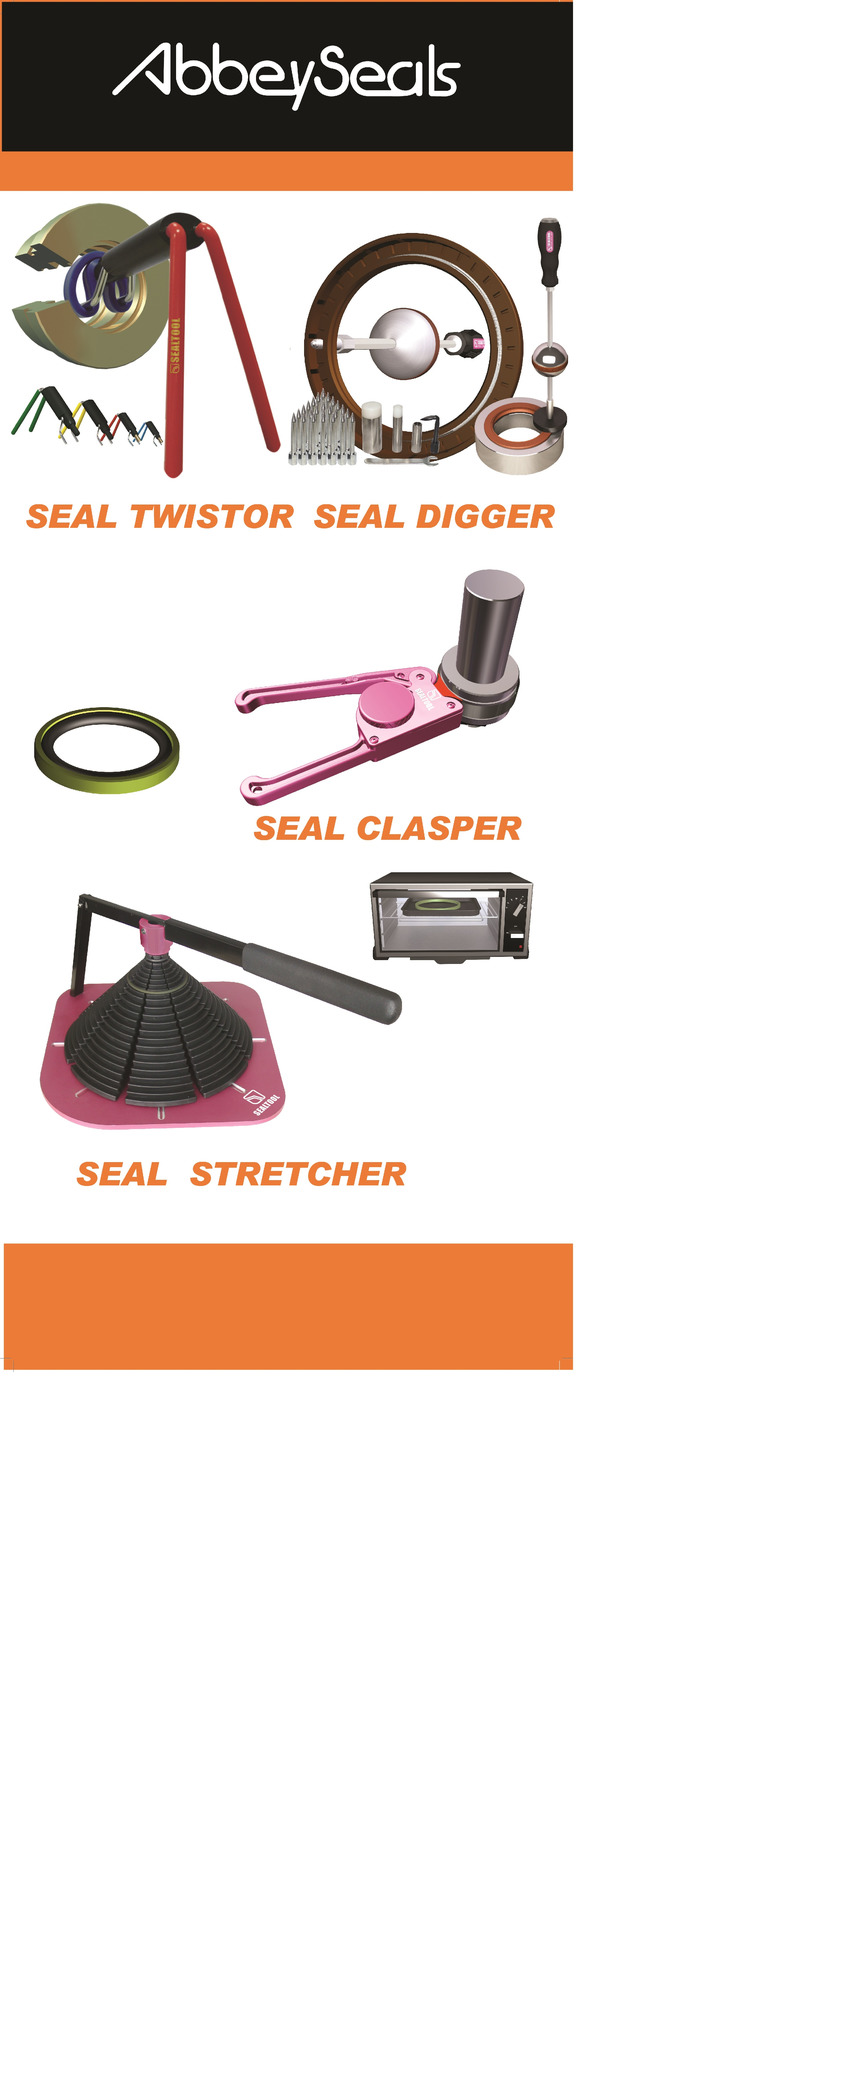 Logo Seal Fitting and Removal Tools